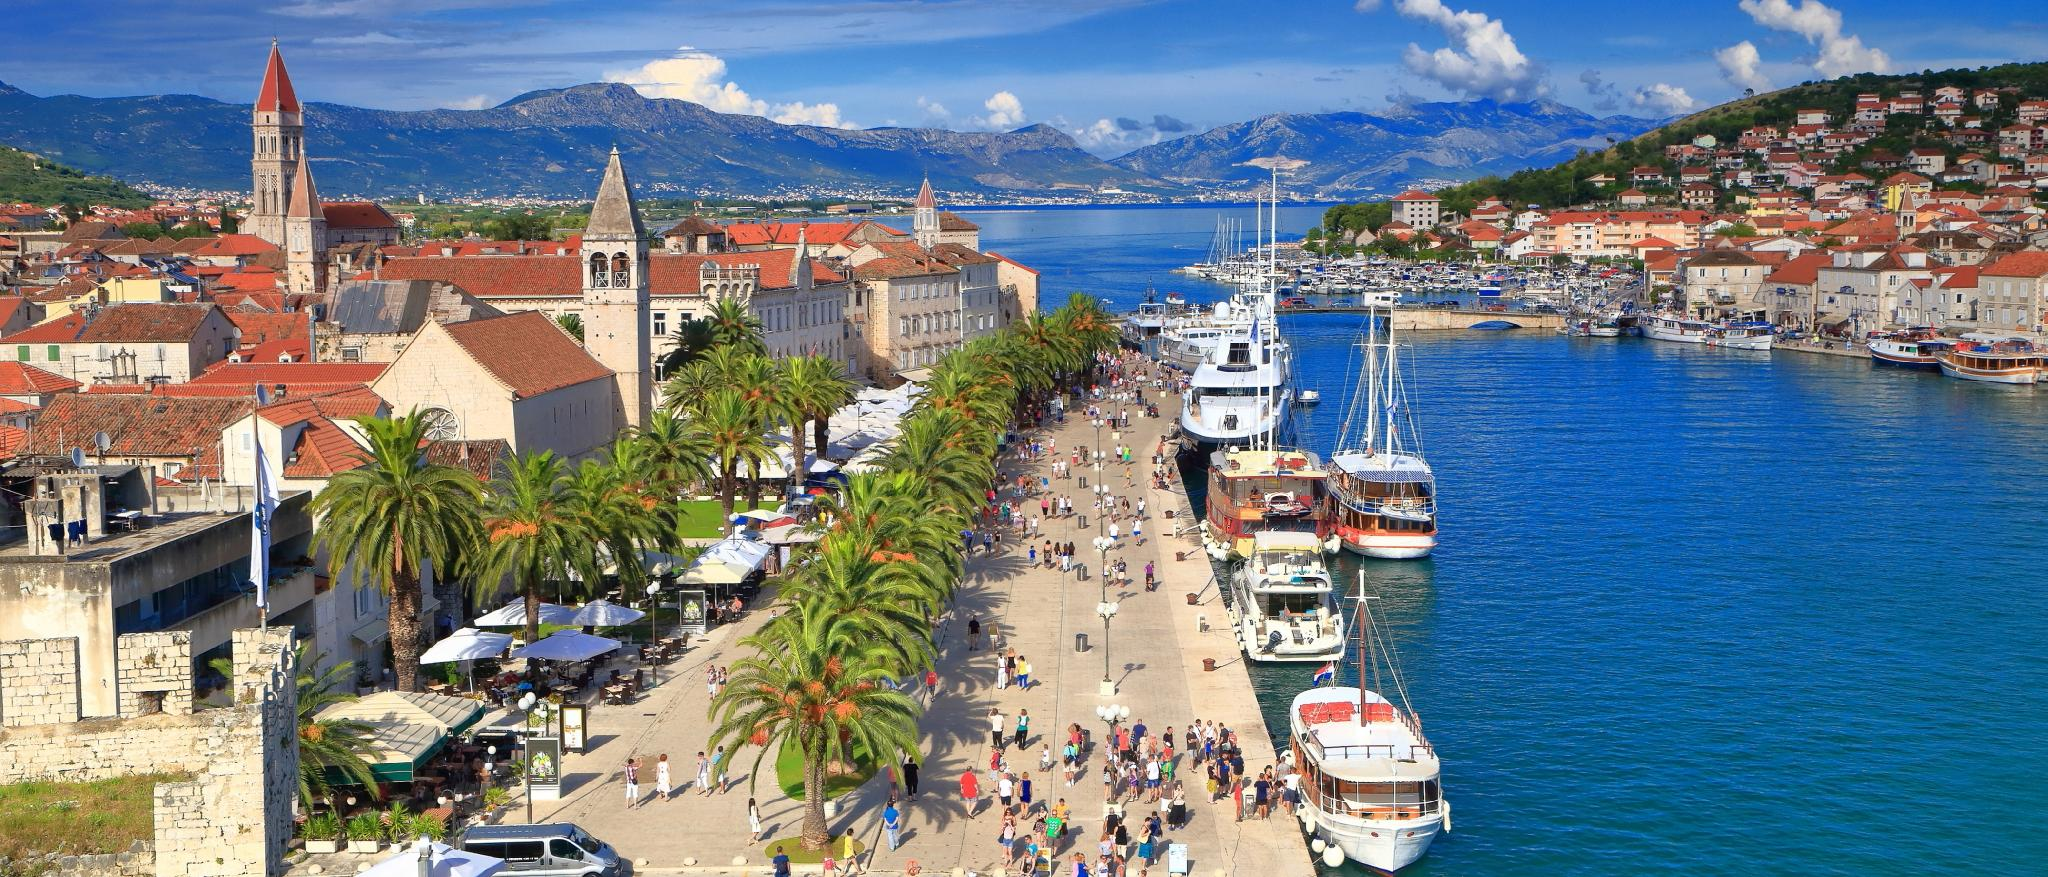 Indonesian Rupiah To Usd 10 Best Trogir Hotels Hd Photos Reviews Of Hotels In